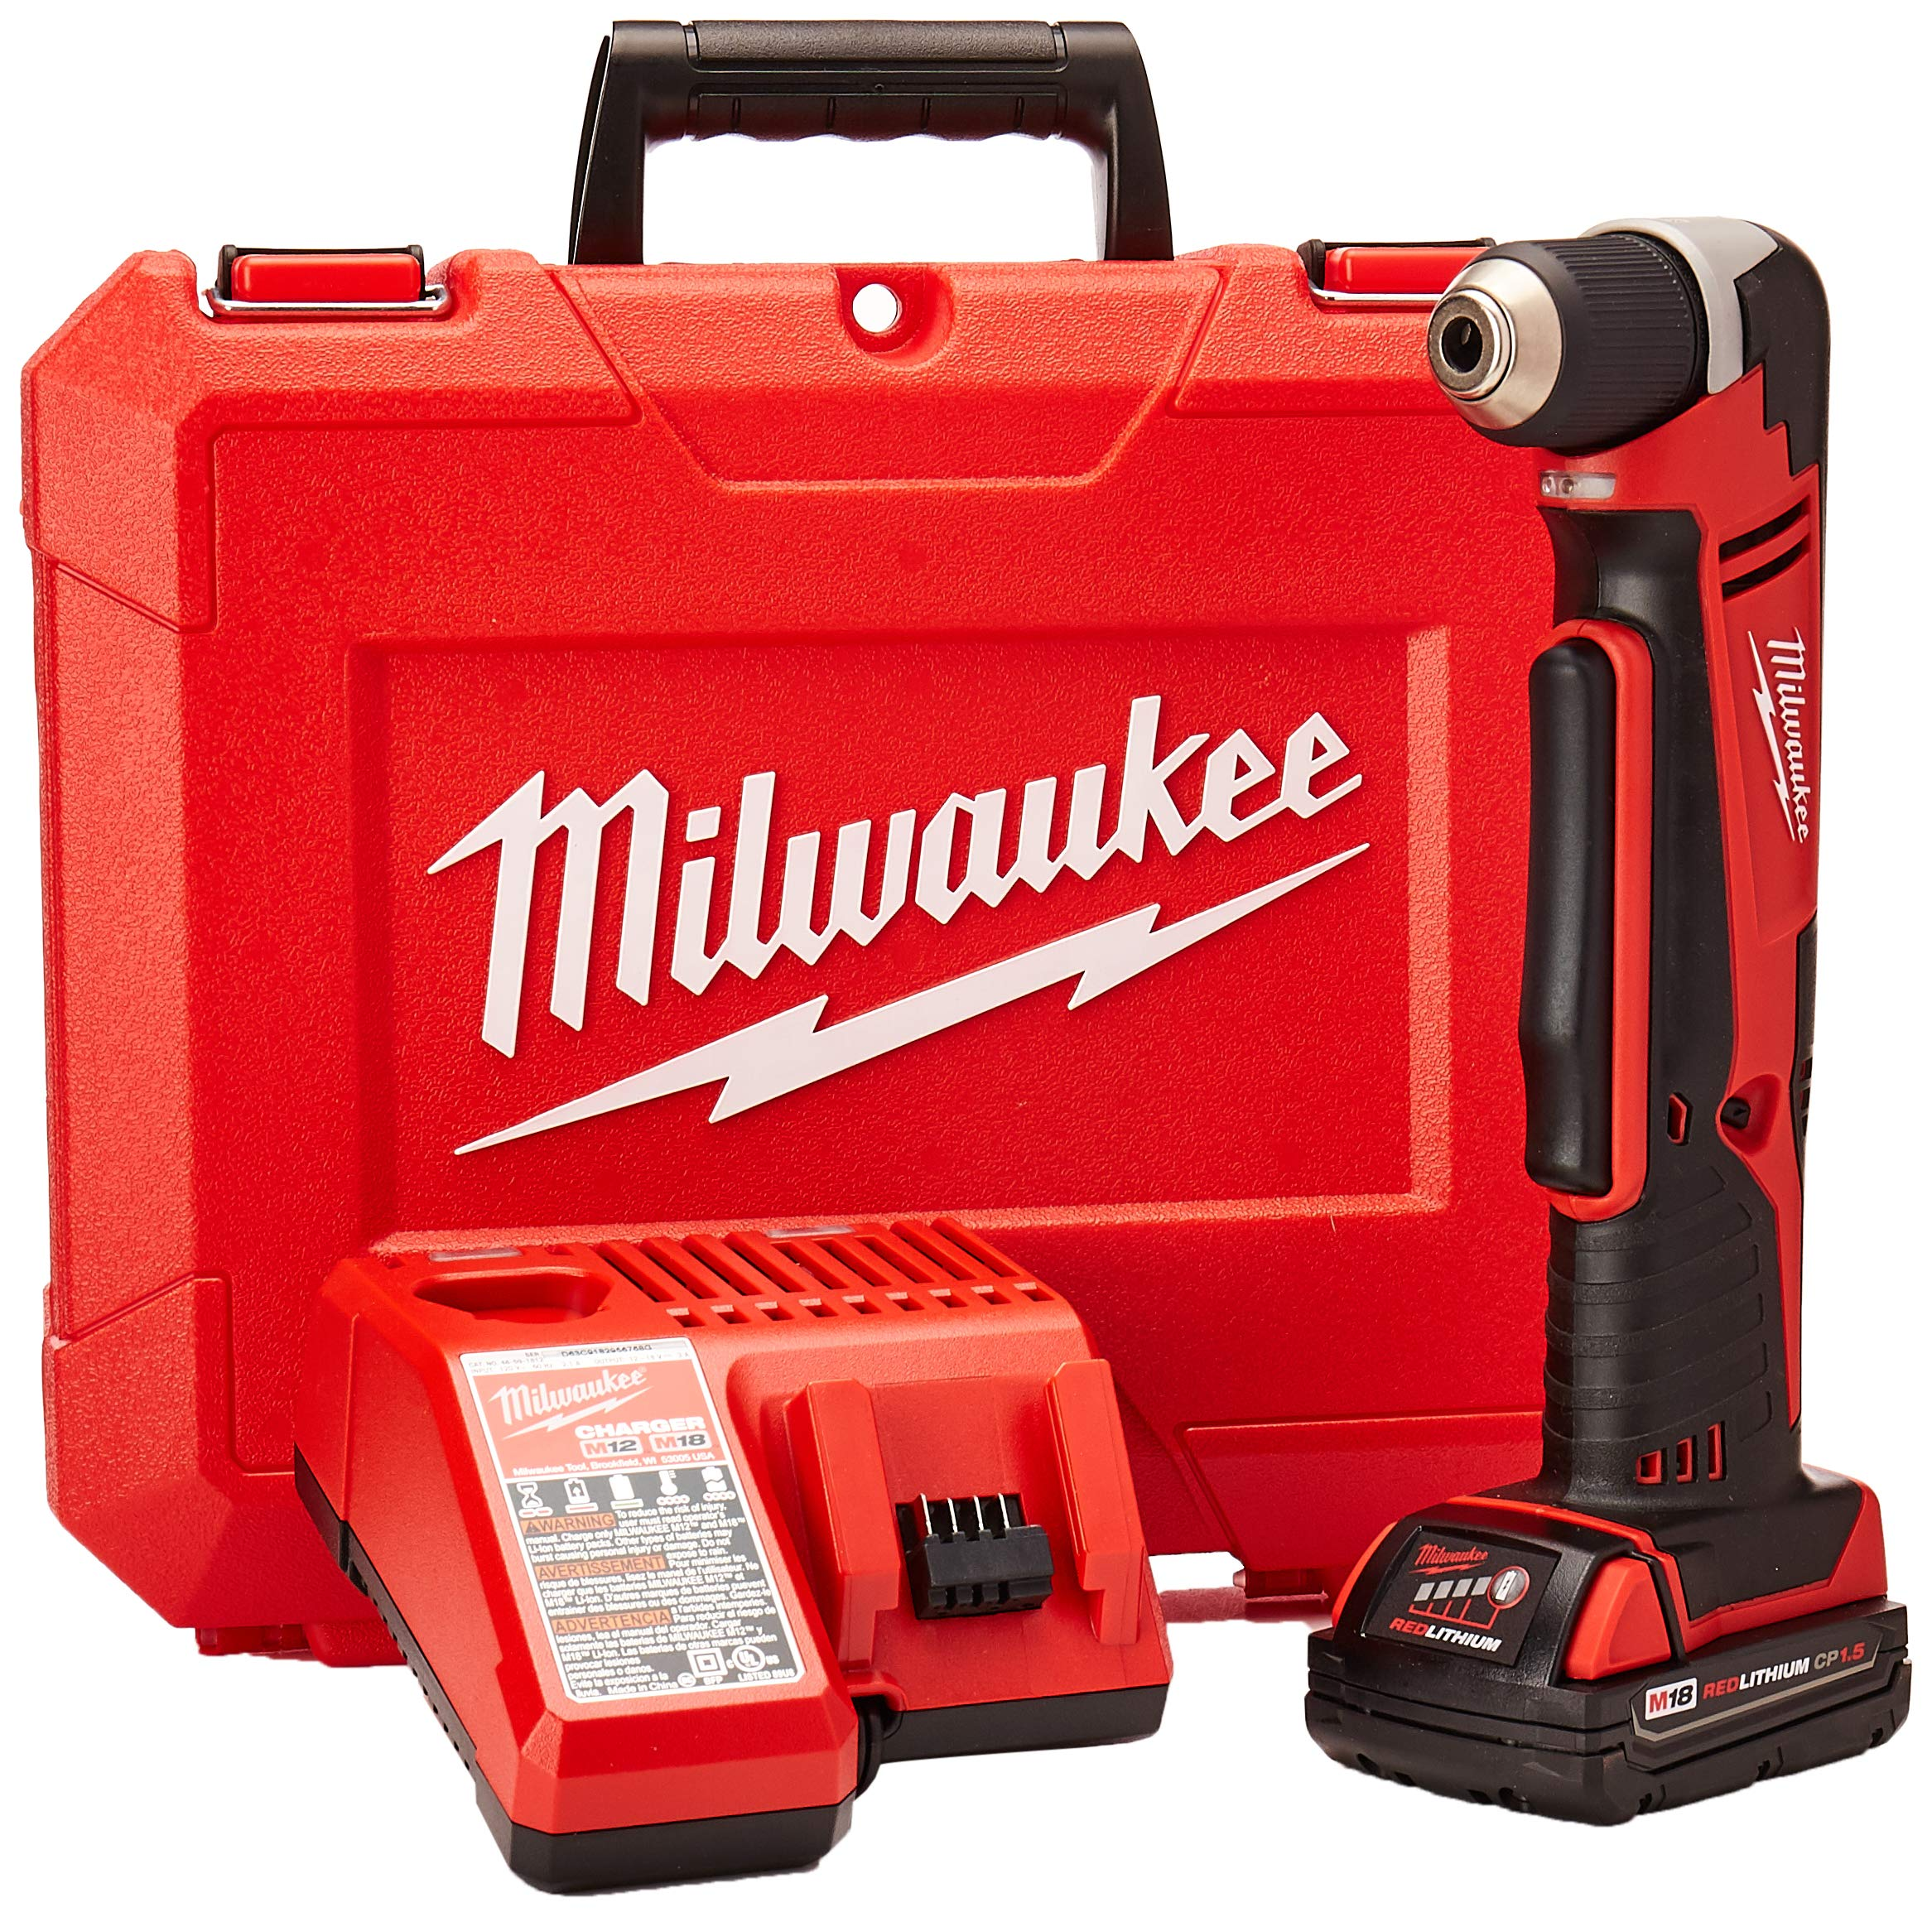 Milwaukee Electric Tool 2615-21CT Right Angle Cordless Drill Kit, 18 V, Li-Ion, 3/8'' Single Sleeve Chuck by Milwaukee